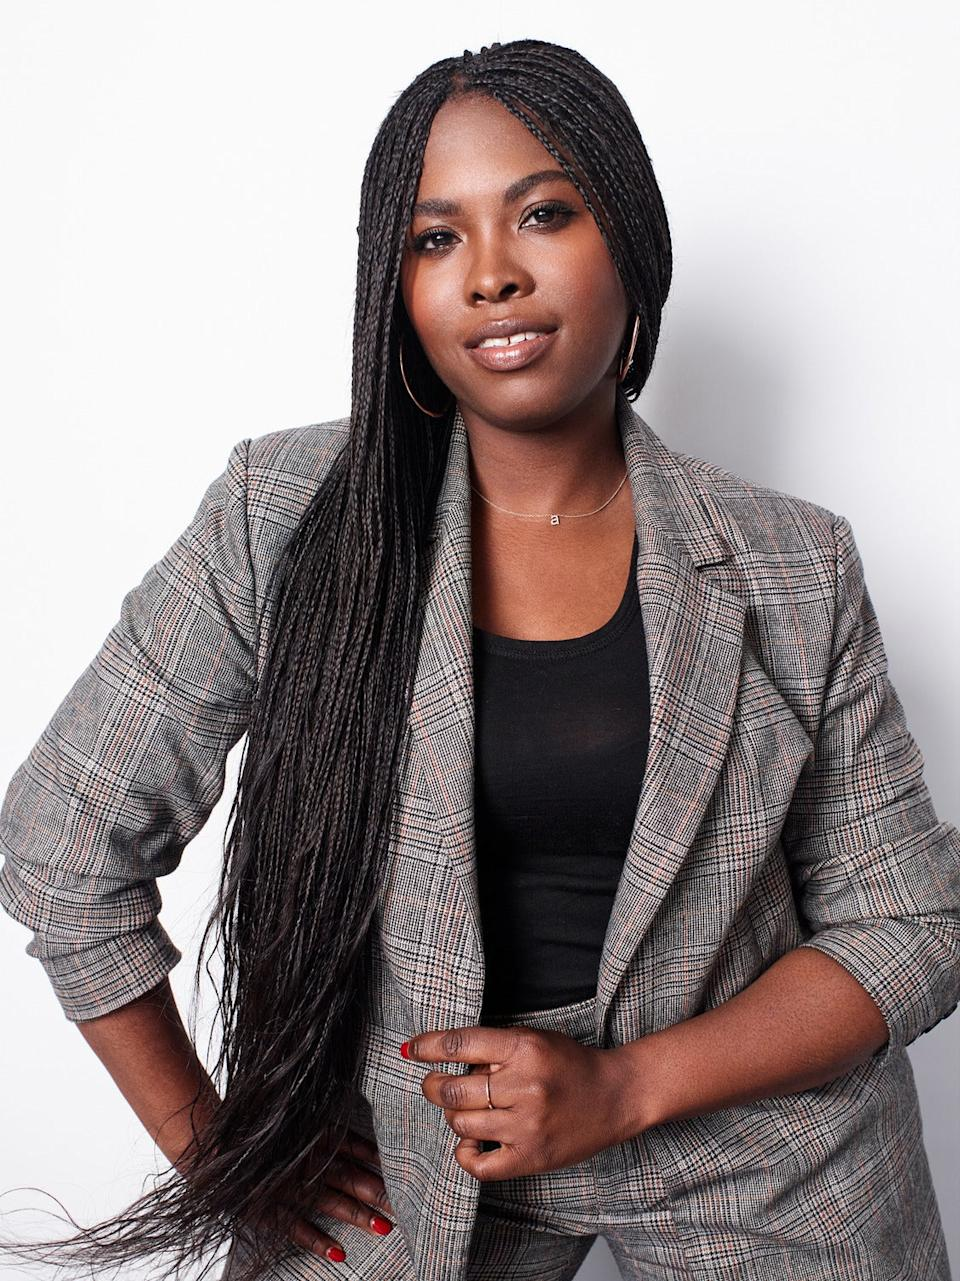 """<h2>Lacy Redway, Celebrity Hairstylist</h2><br><strong>How has Walker inspired you and motivated you as an entrepreneur? How do you relate to her journey?</strong><br>""""I've always been skilled and passionate about doing hair. Once I learned to manage my skills and business, it became a pursuable career path for me. Her legacy is inspiring because she had to overcome obstacles while carving out her path. She was always striving to find products to improve the health of textured hair, which is something I practice daily with my work. I think any dreamer would be able to identify with her determination.""""<br><br><strong>What legacy do you want to leave behind?</strong><br>""""Similarly to Walker, I want to make sure that I can create more opportunities for people of color and generational wealth for my bloodline. I want to encourage other Black women to believe in themselves and in the paths they choose.""""<br>"""